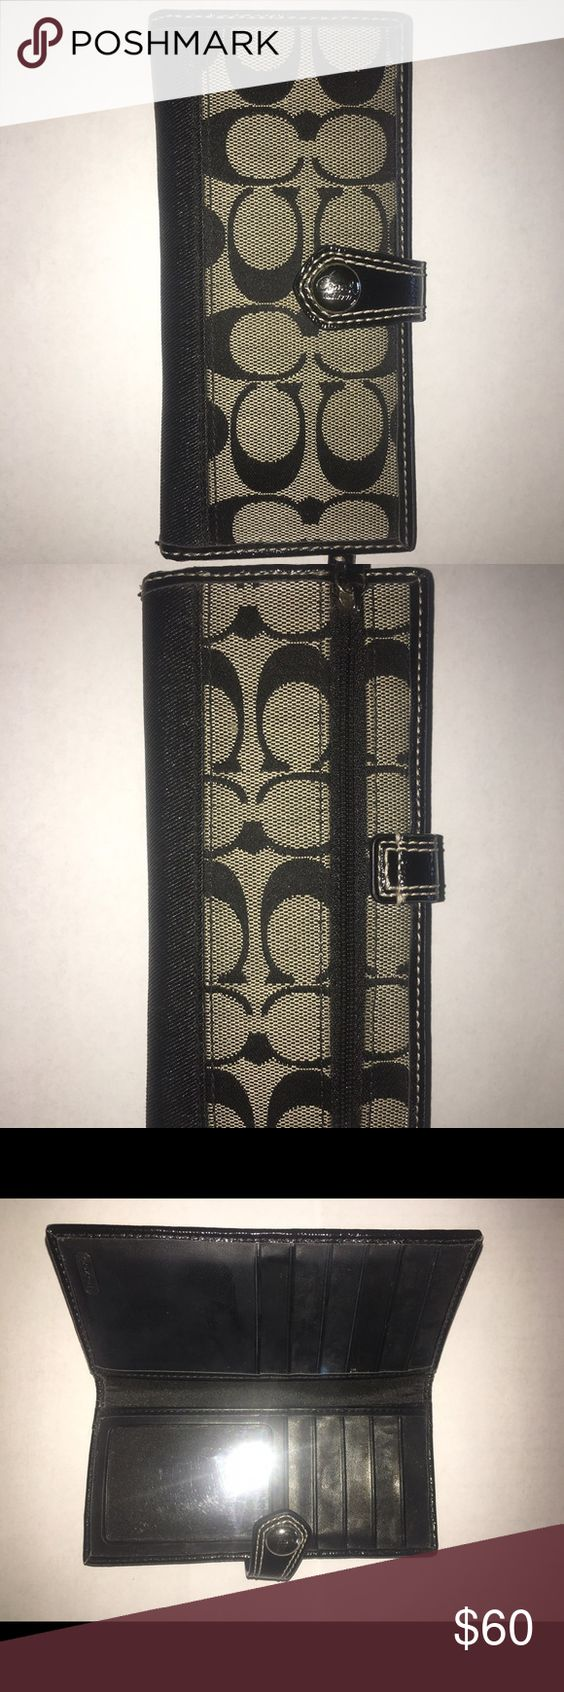 Coach wallet Logo wallet• coach wallet• in great shape• no rips or stains• button close • 11 card slots • slot for cash or other stuff Coach Bags Wallets